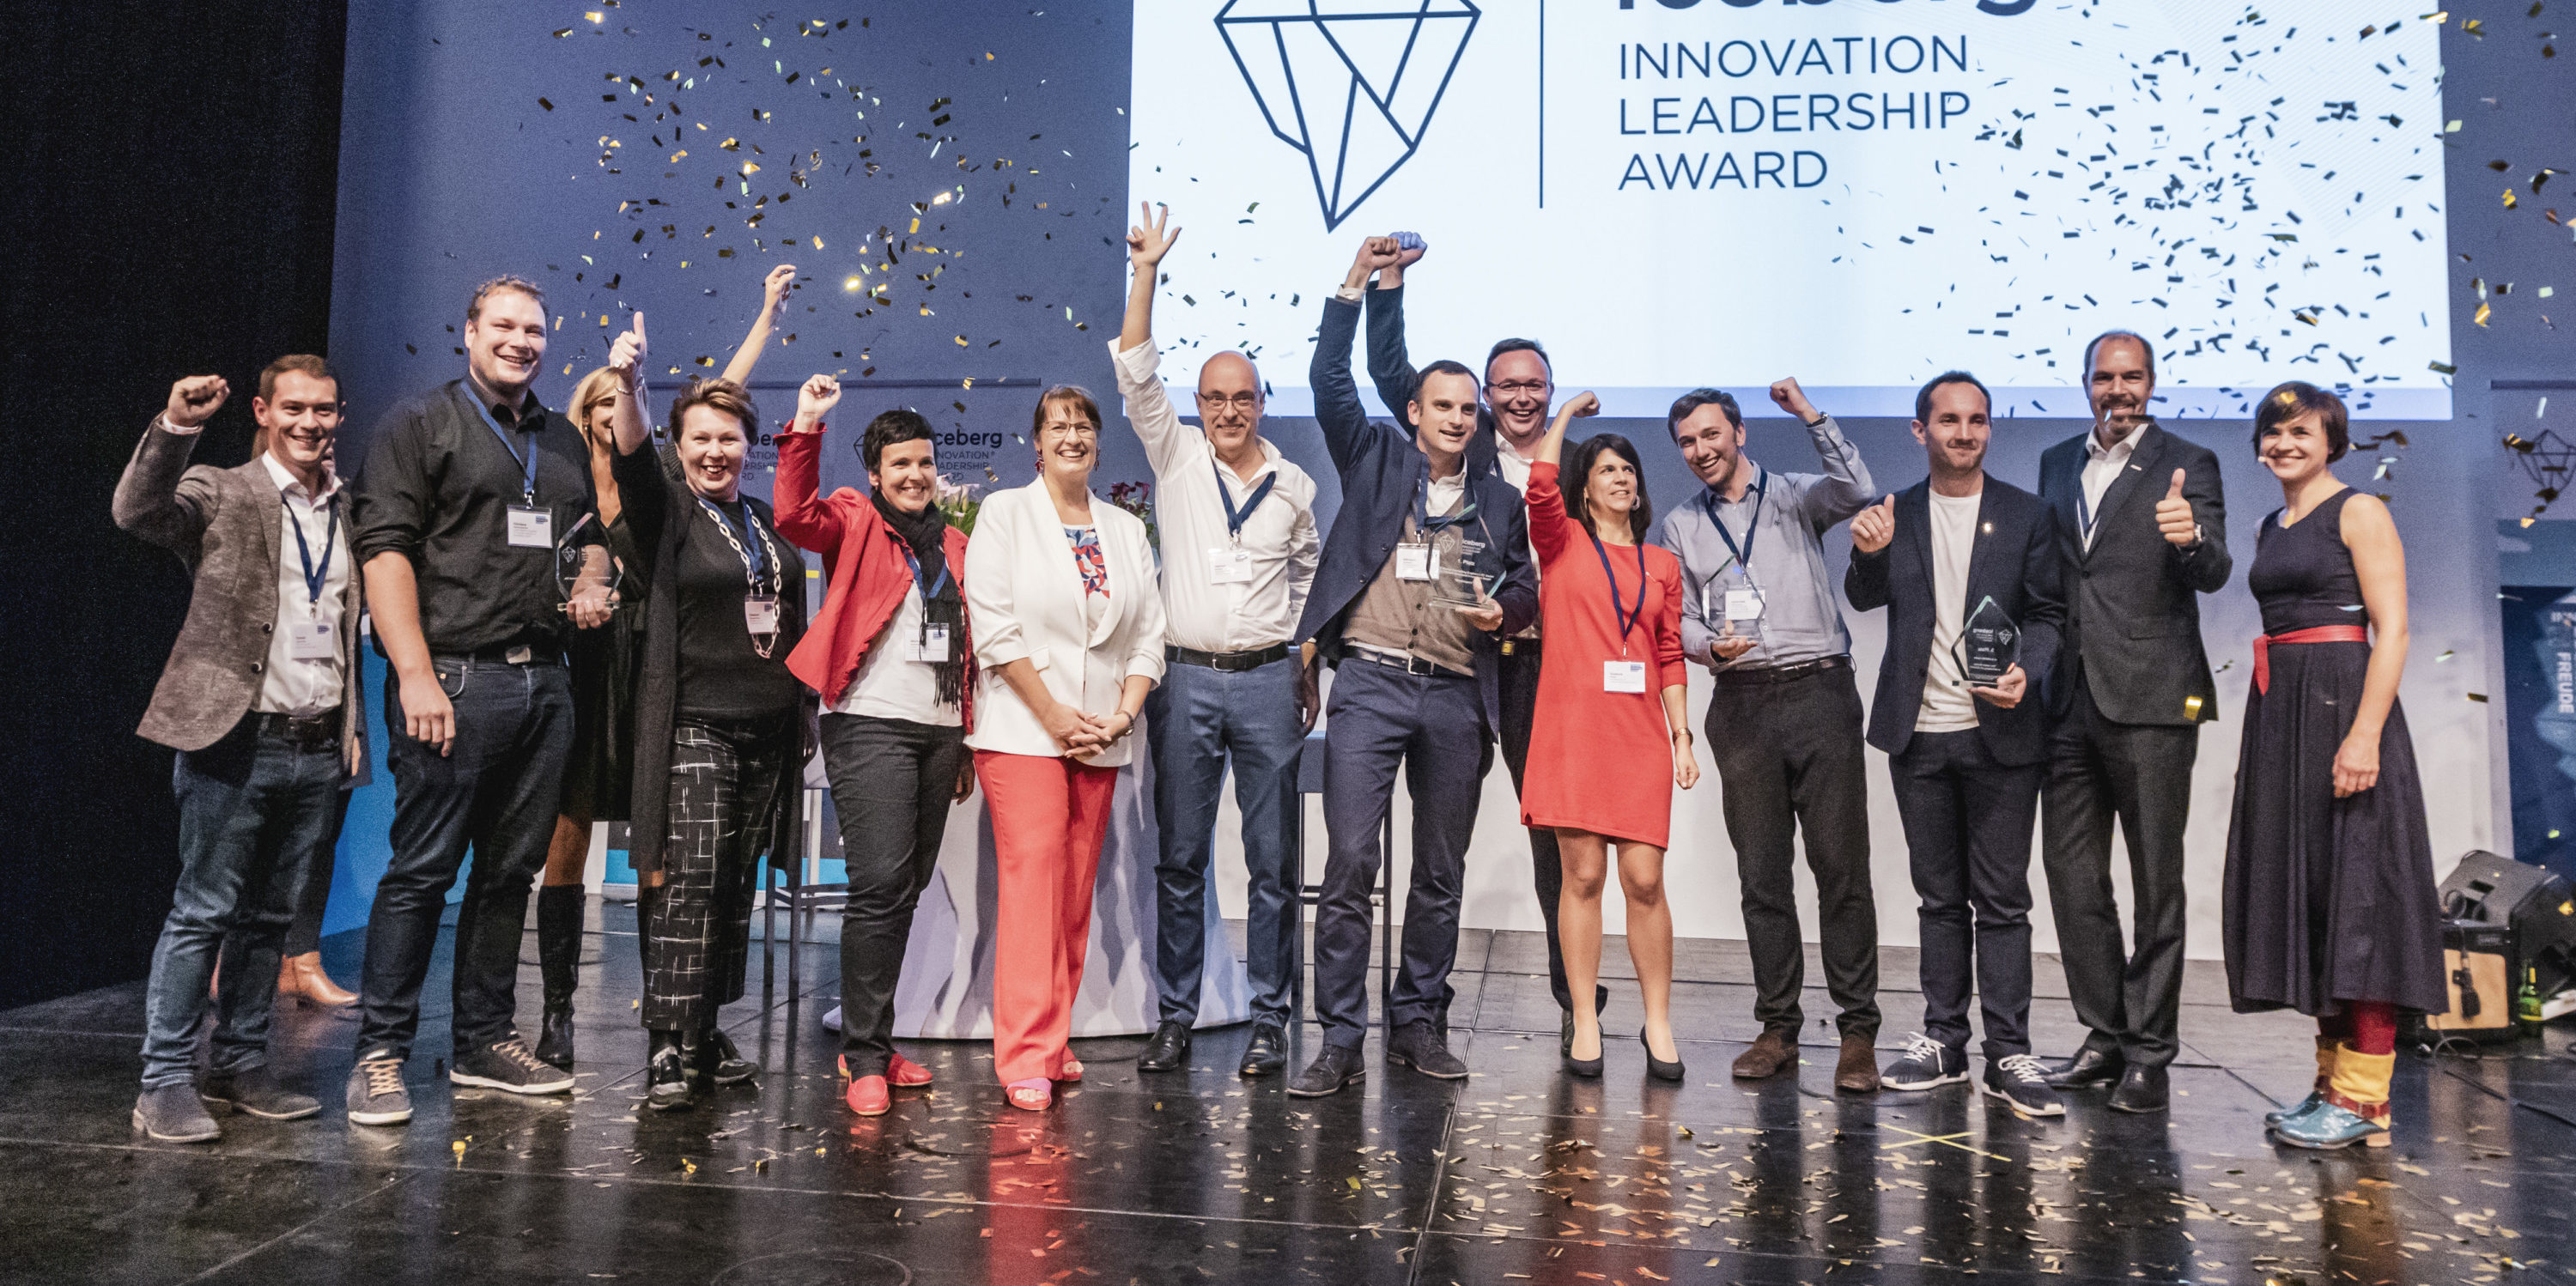 ICEBERG innovation leadership award